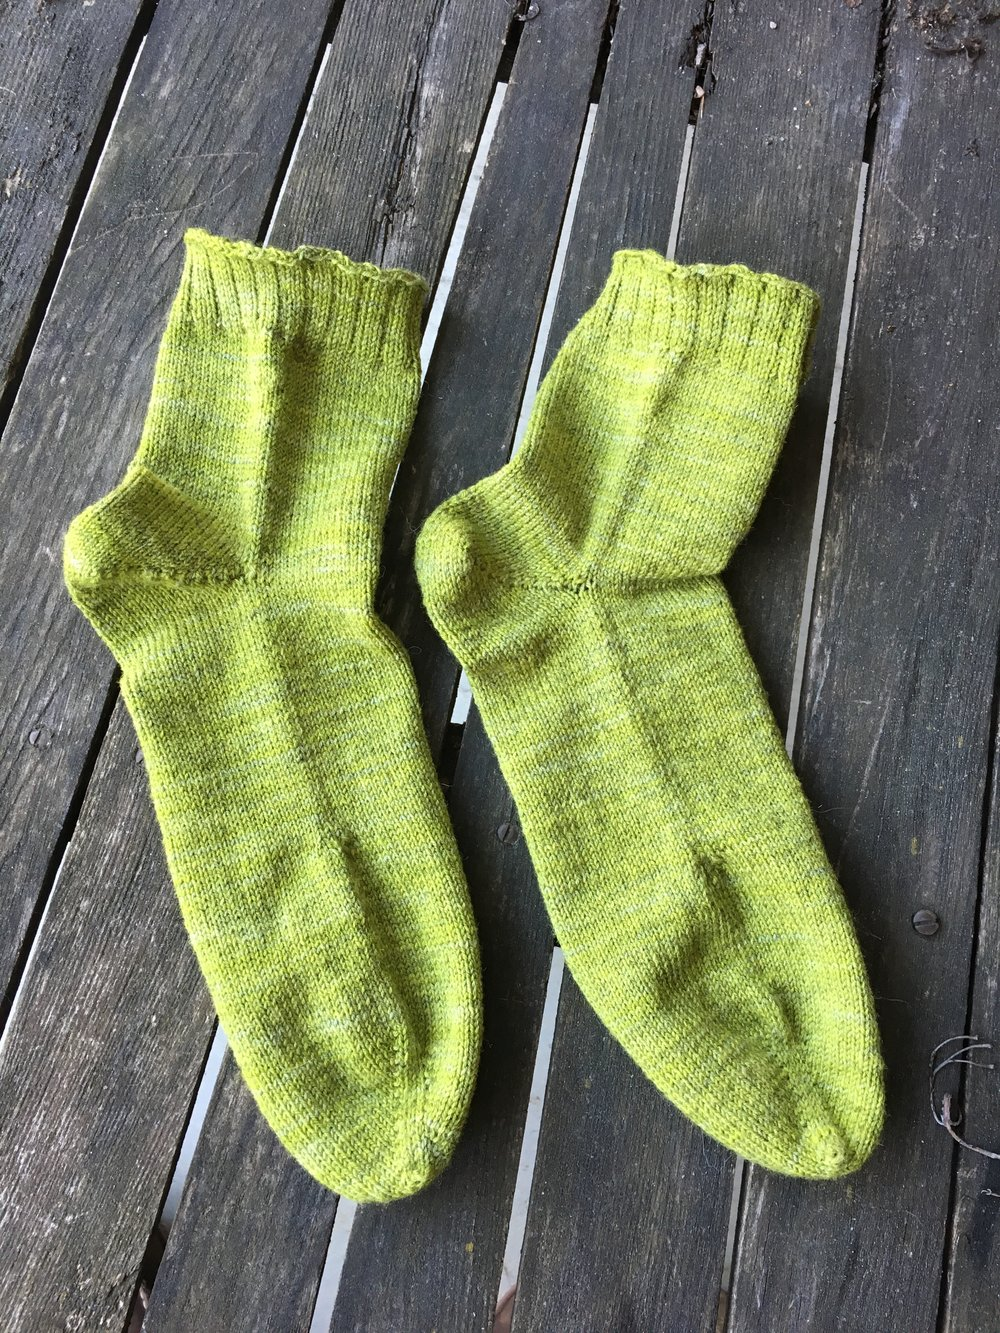 Custom size your own socks!